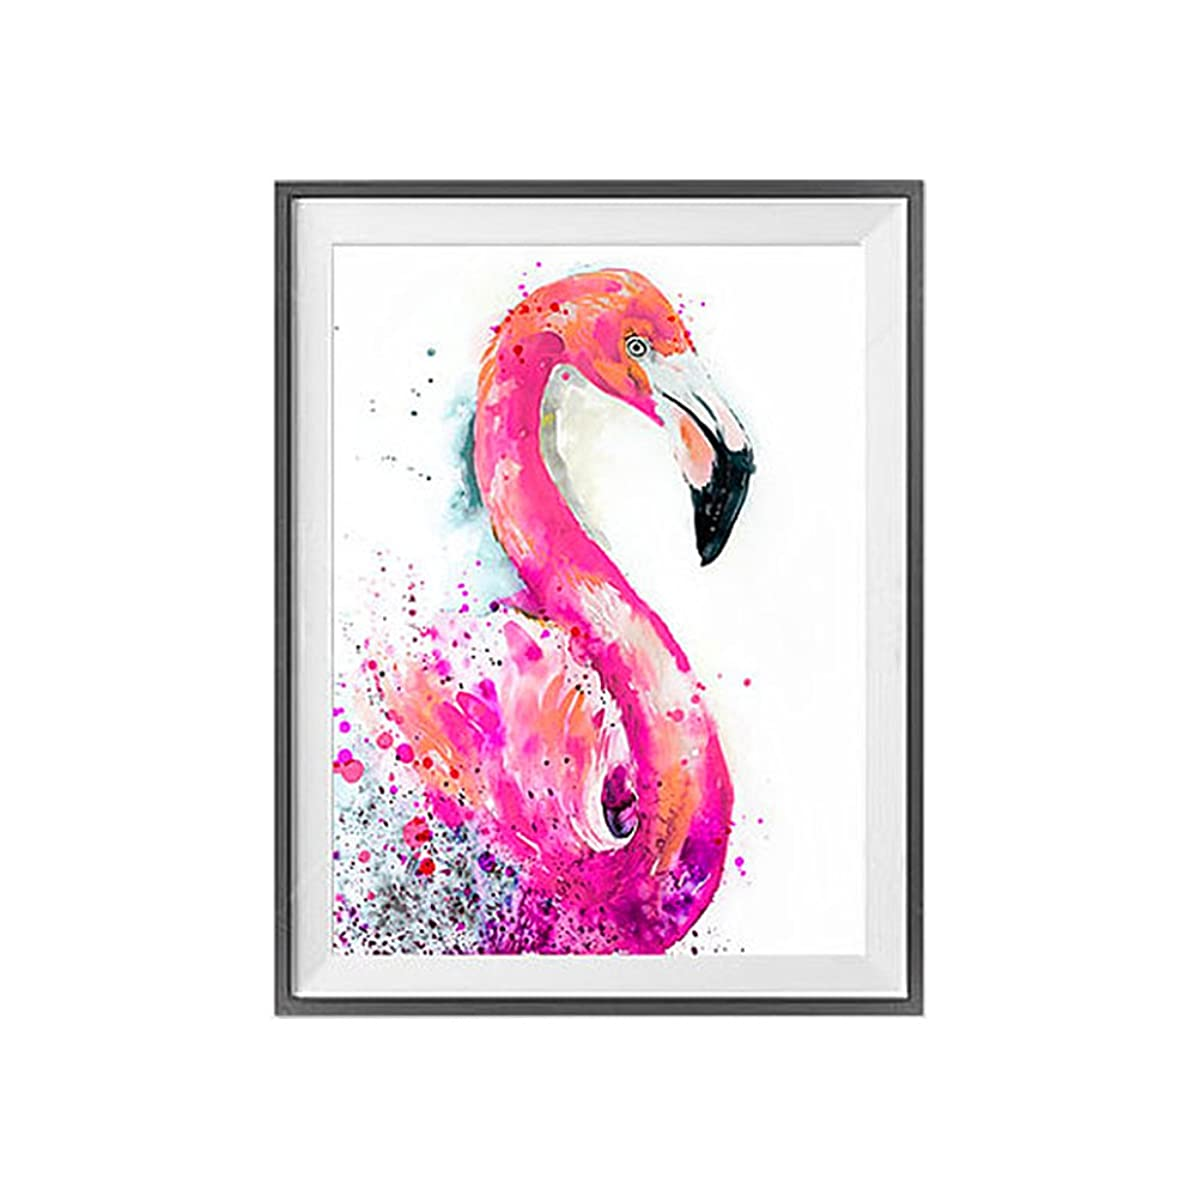 DIY 5D Diamond Painting by Number Kits, Crystal Rhinestone Diamond Embroidery Paintings Pictures Arts Craft for Home Wall Decor(Flamingo)